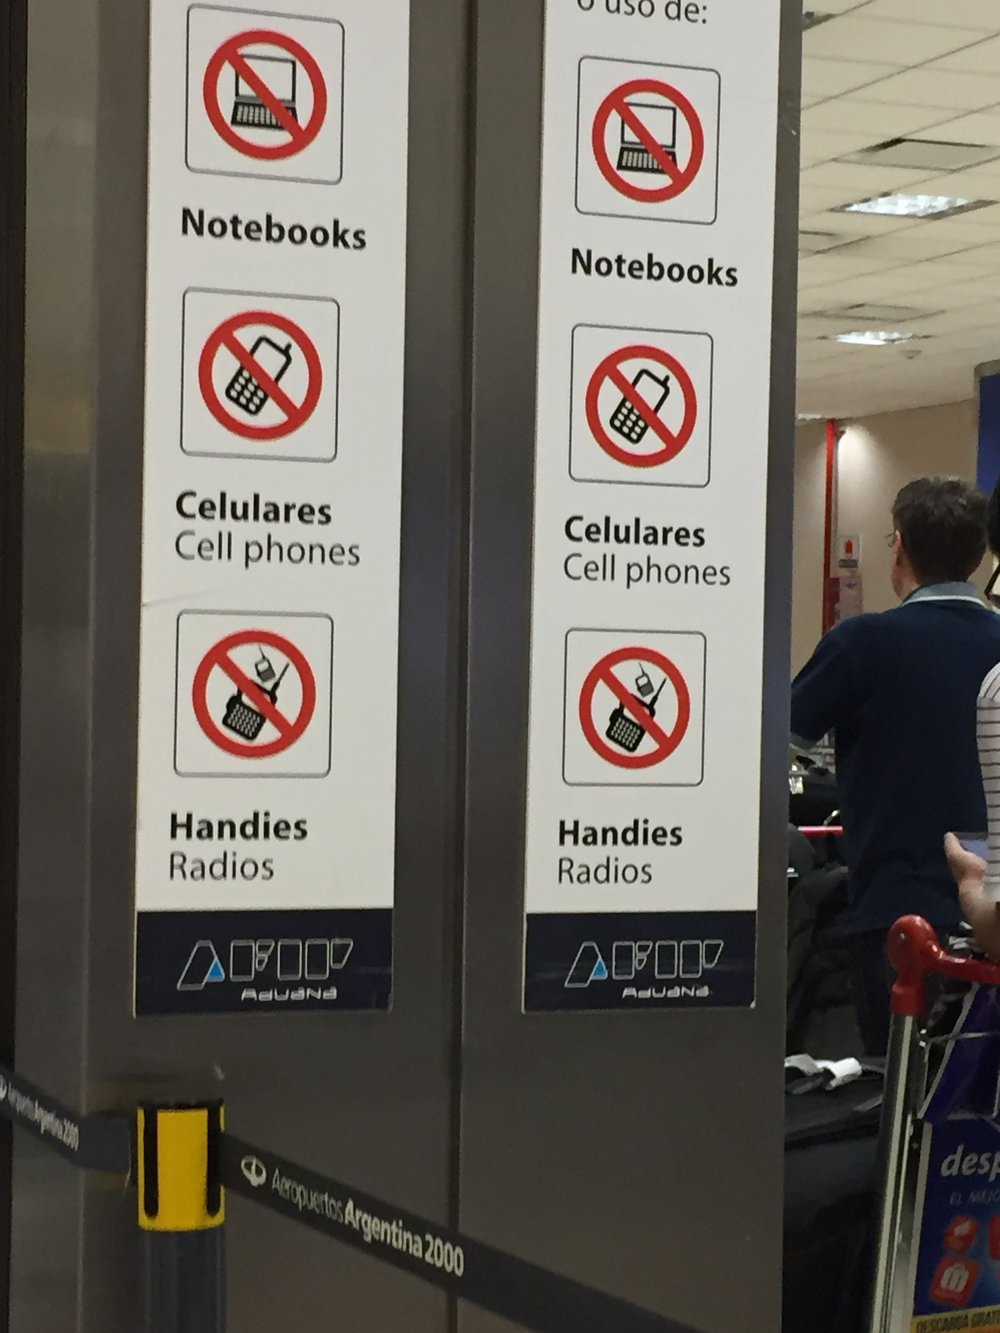 """I don't know why I find the term """"Handies"""" funny, but I do. Which is why I took this photo while waiting in line for Passport Control in BA."""